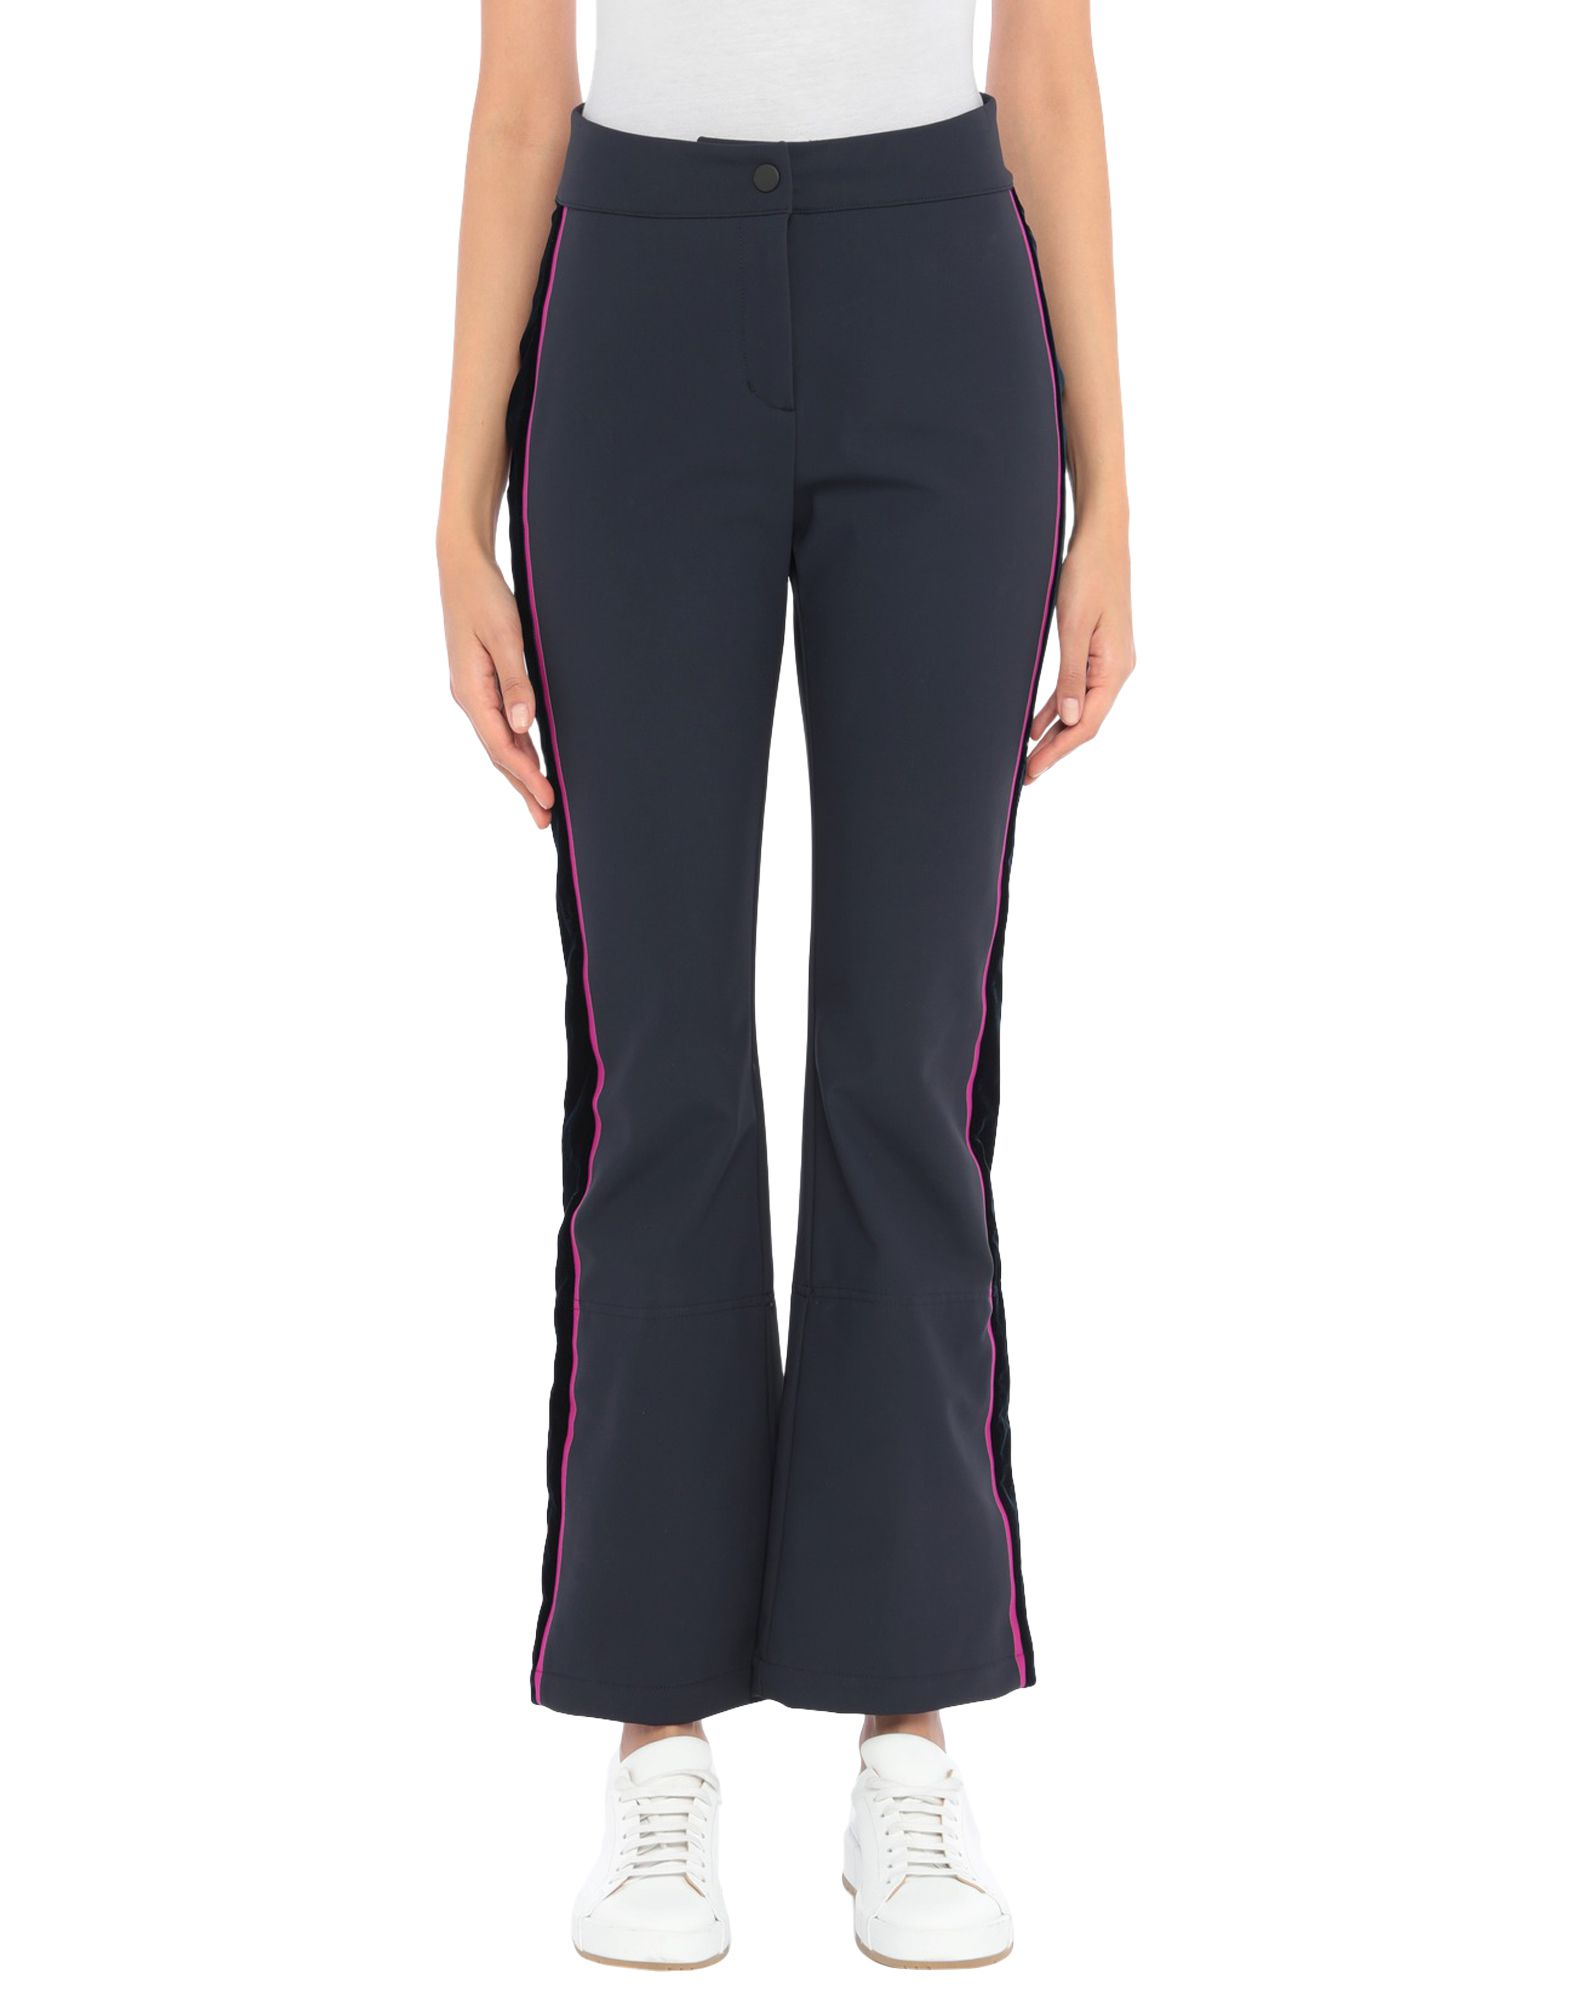 GIORGIO ARMANI Ski Pants. velvet, techno fabric, logo, side seam stripes, solid color, mid rise, regular fit, flare & wide-leg, button, zip, multipockets, stretch, limited edition, zips at hem, large sized. 79% Polyamide, 21% Elastane, Viscose, Cupro